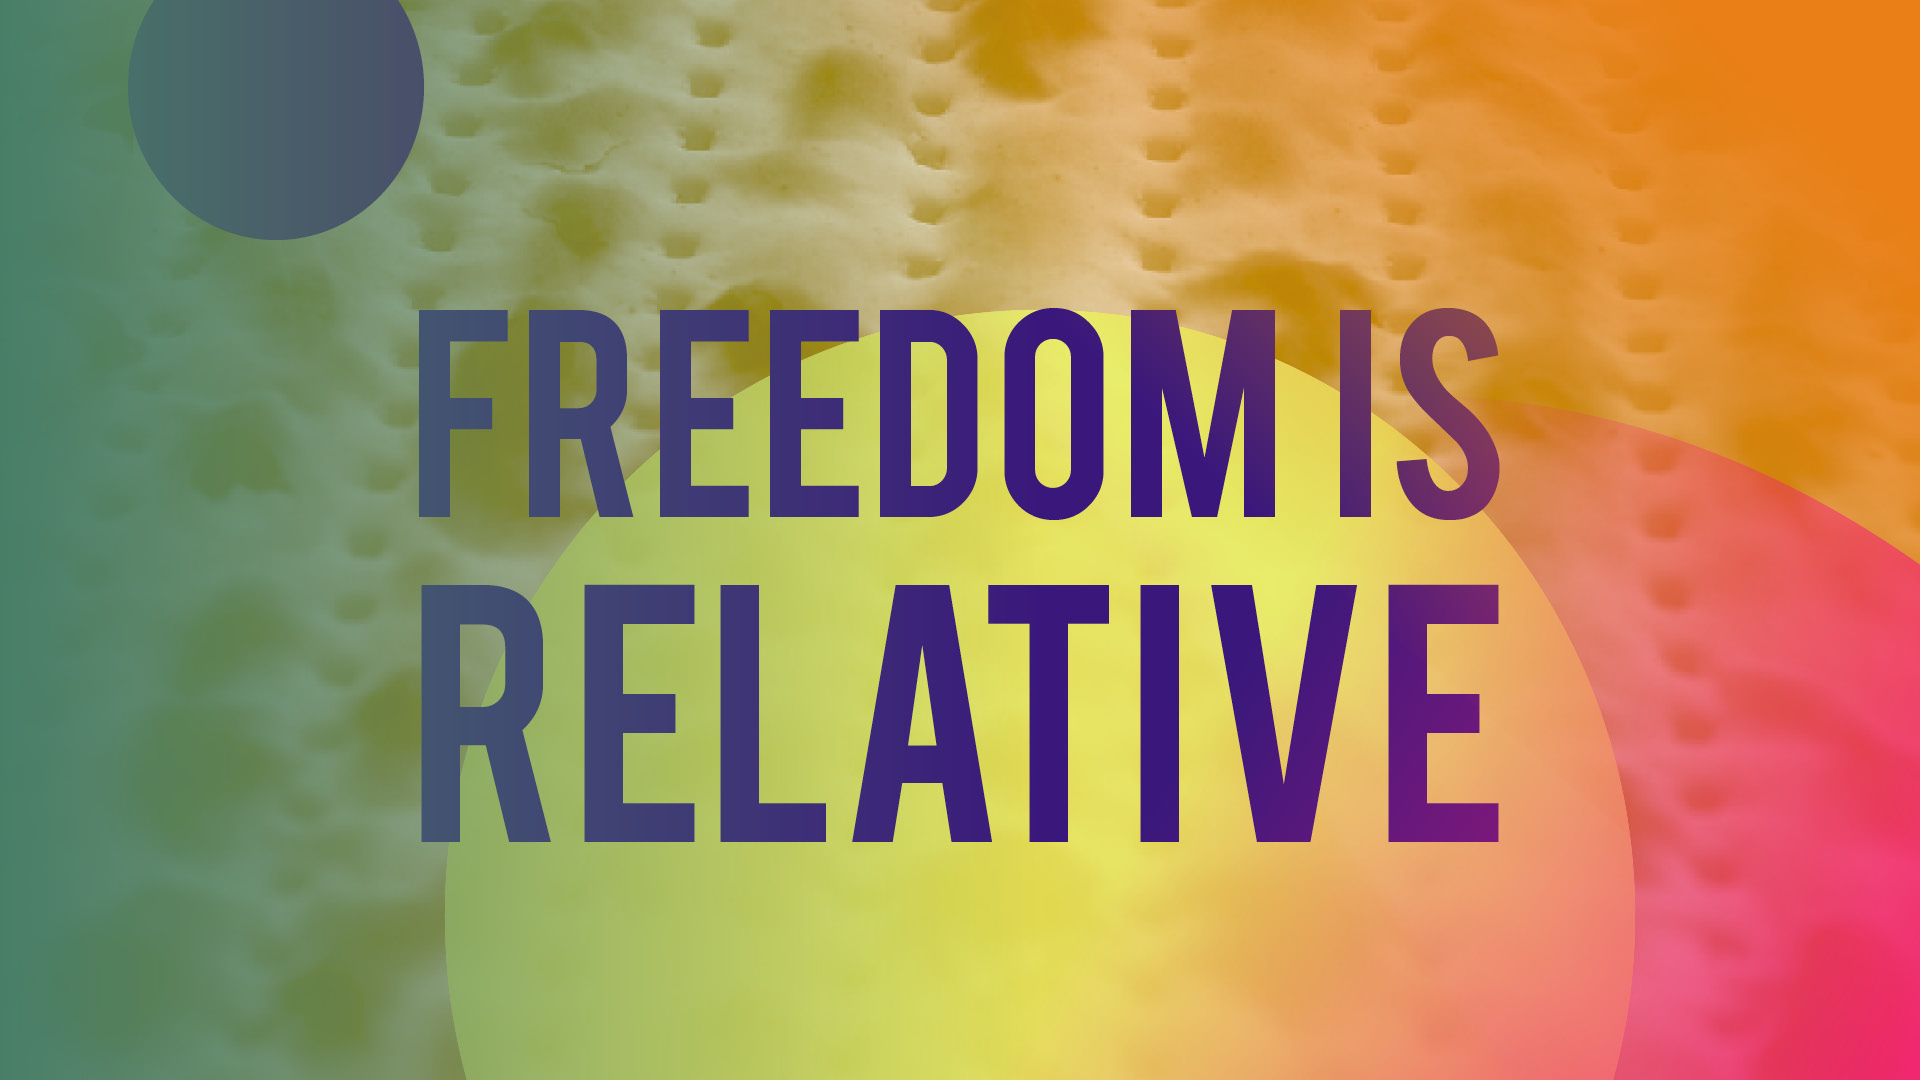 Freedom Is Relative